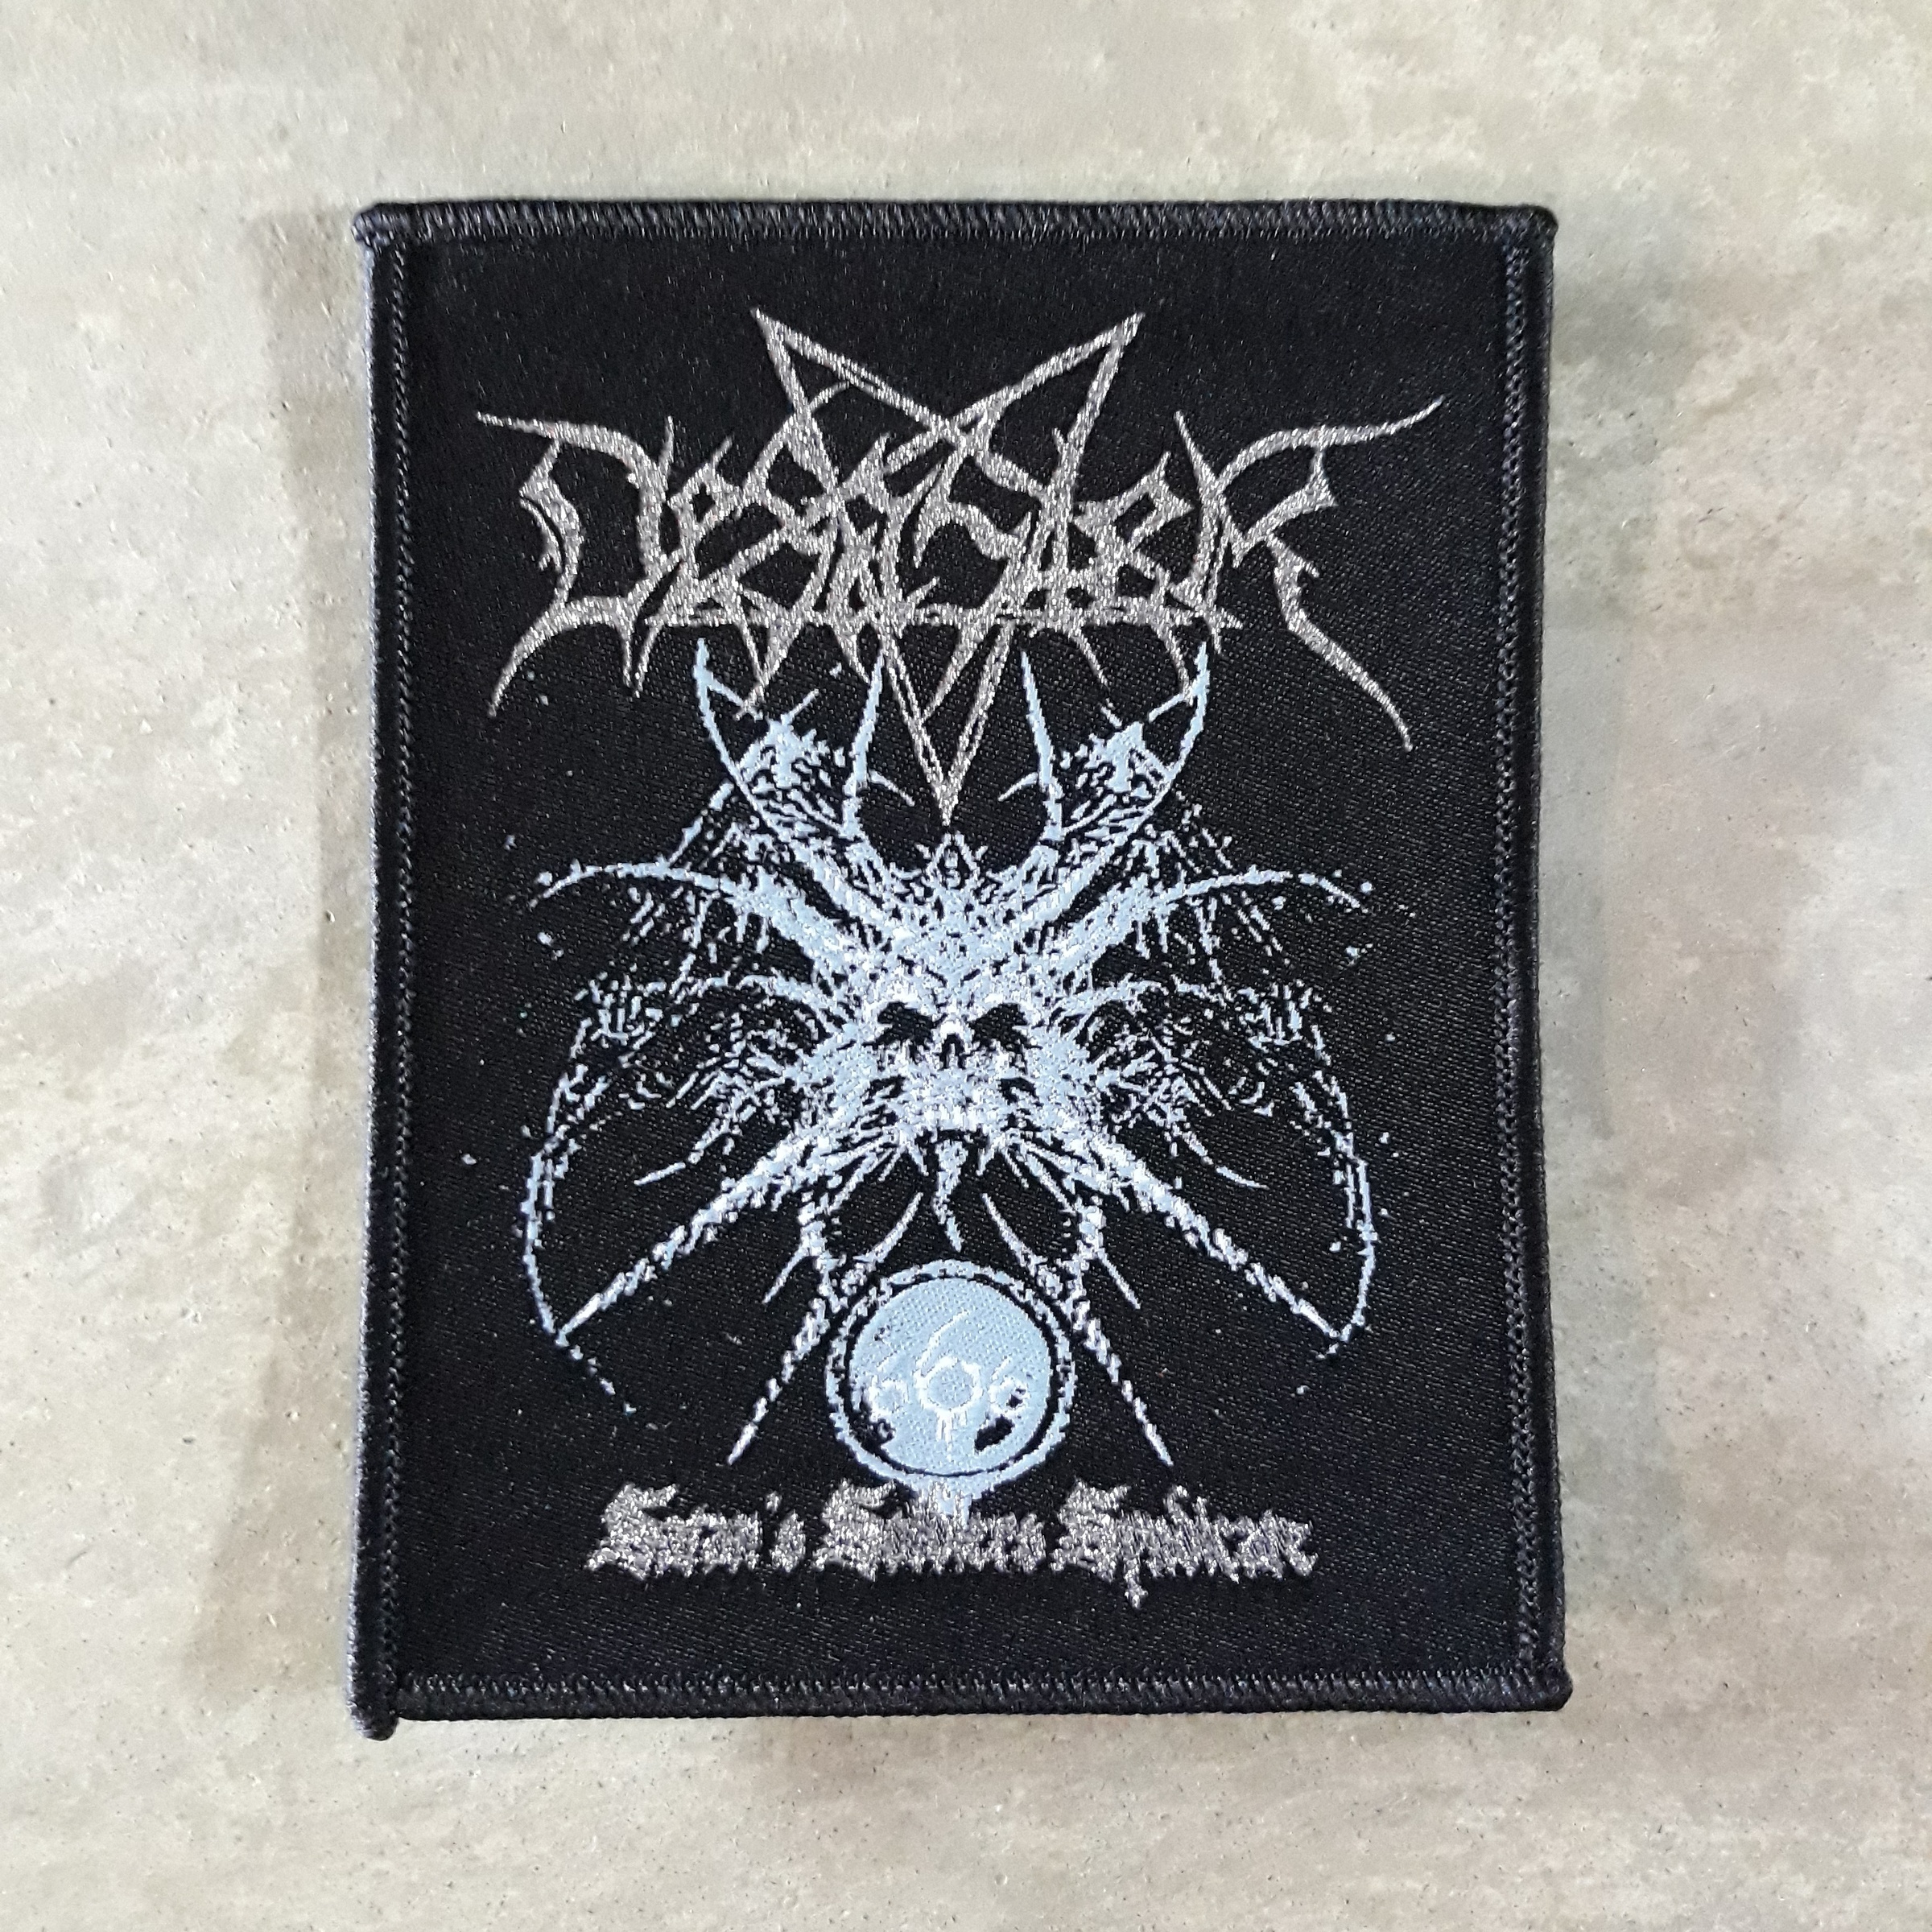 DESASTER-Satans Soldiers Syndicate PATCH.jpeg